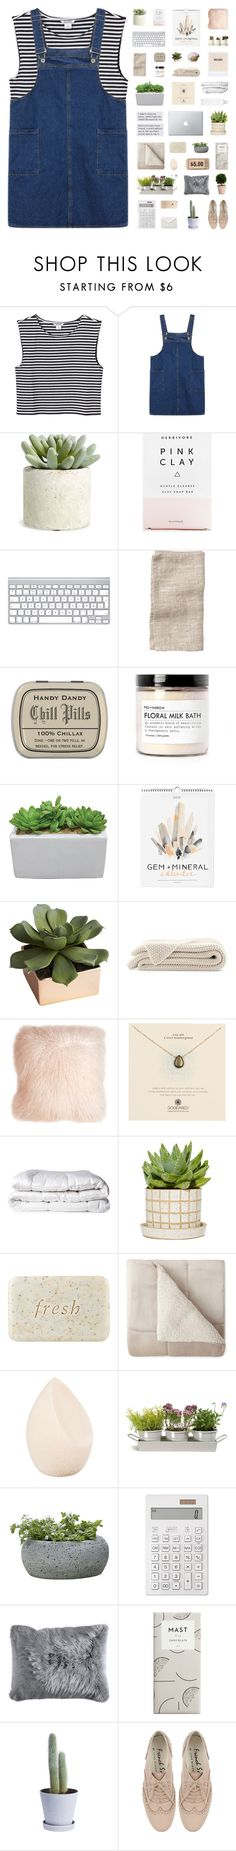 """lost boys like me"" by iced-lemons ❤ liked on Polyvore featuring Monki, Allstate Floral, Herbivore, Toast, Fig+Yarrow, CB2, Pillow Decor, Dogeared, Brinkhaus and Fresh"